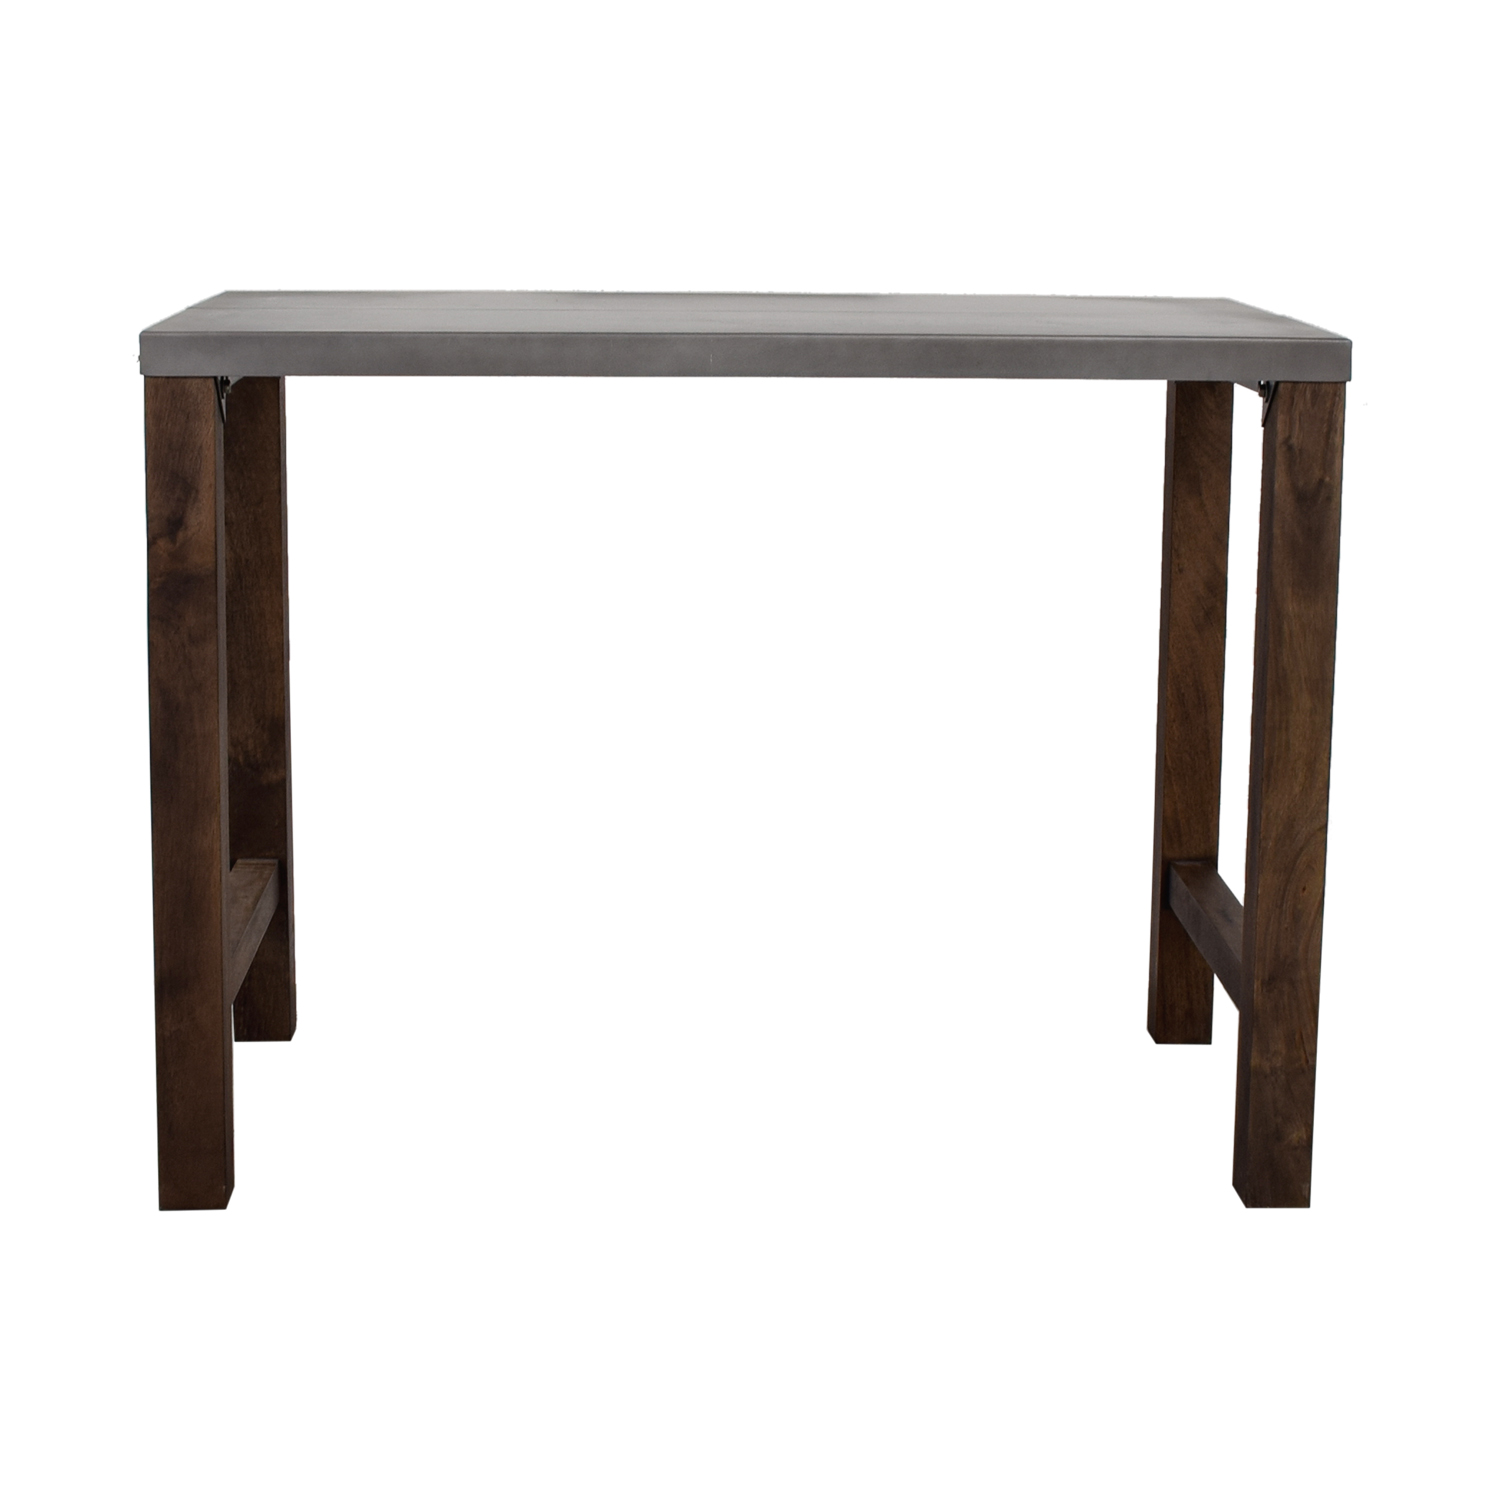 Crate & Barrel Crate & Barrel Metal High Top Table nj